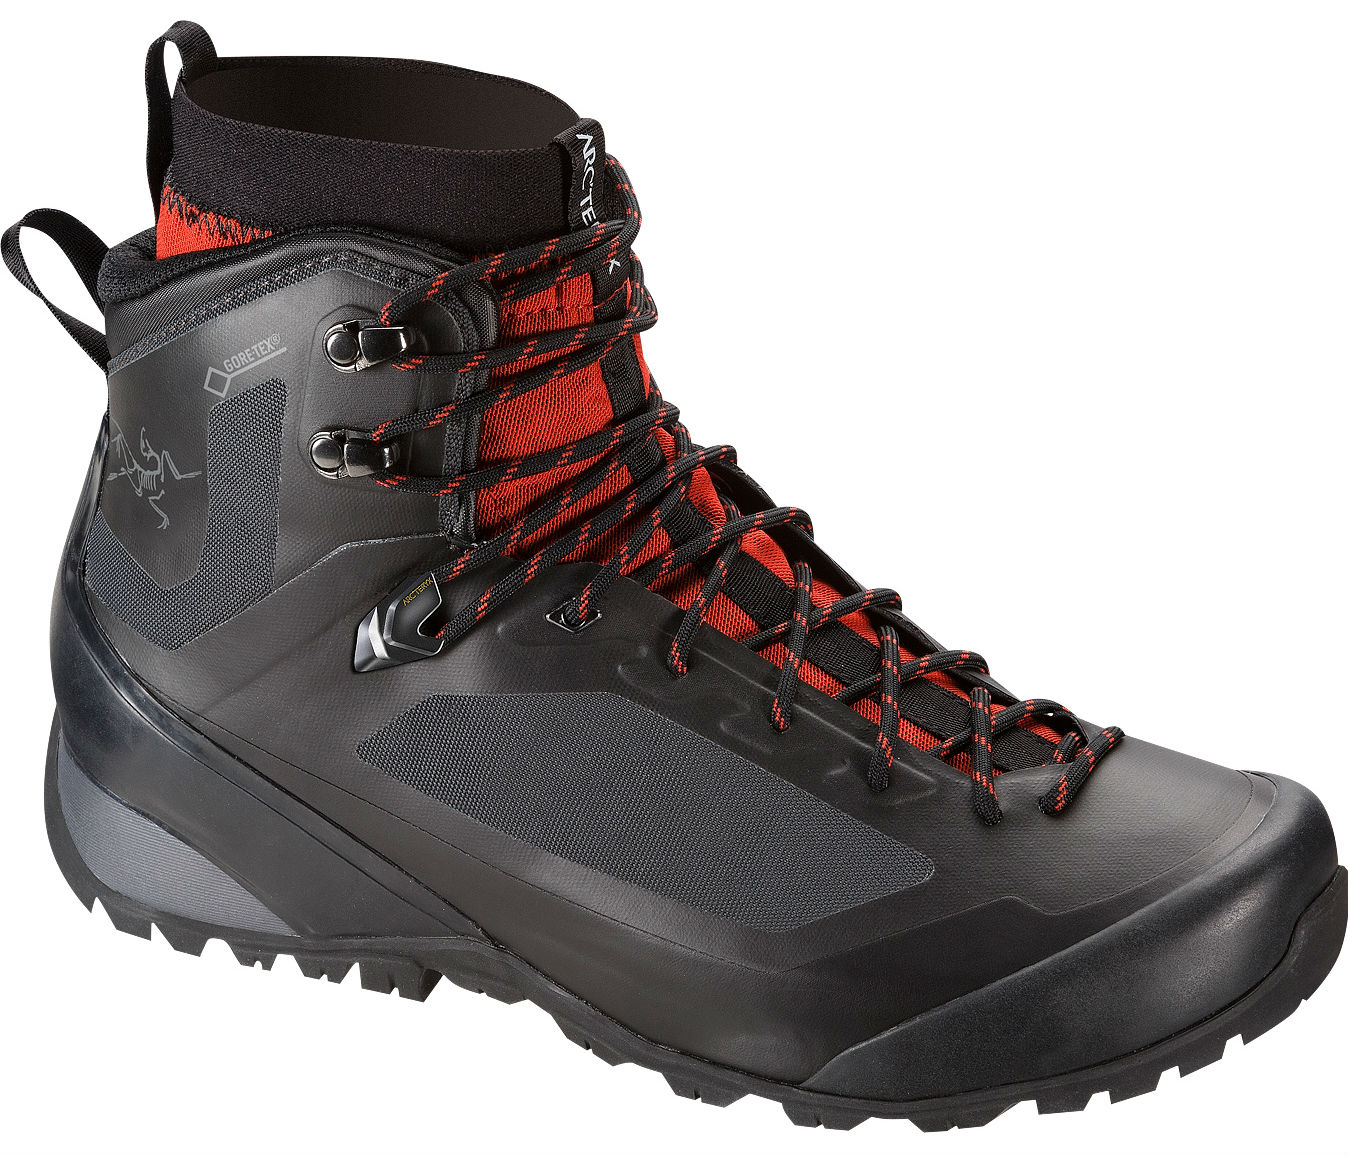 9cc4be018 Arc teryx Bora2 Mid GTX Hiking Boot - Mens with Free S H — CampSaver